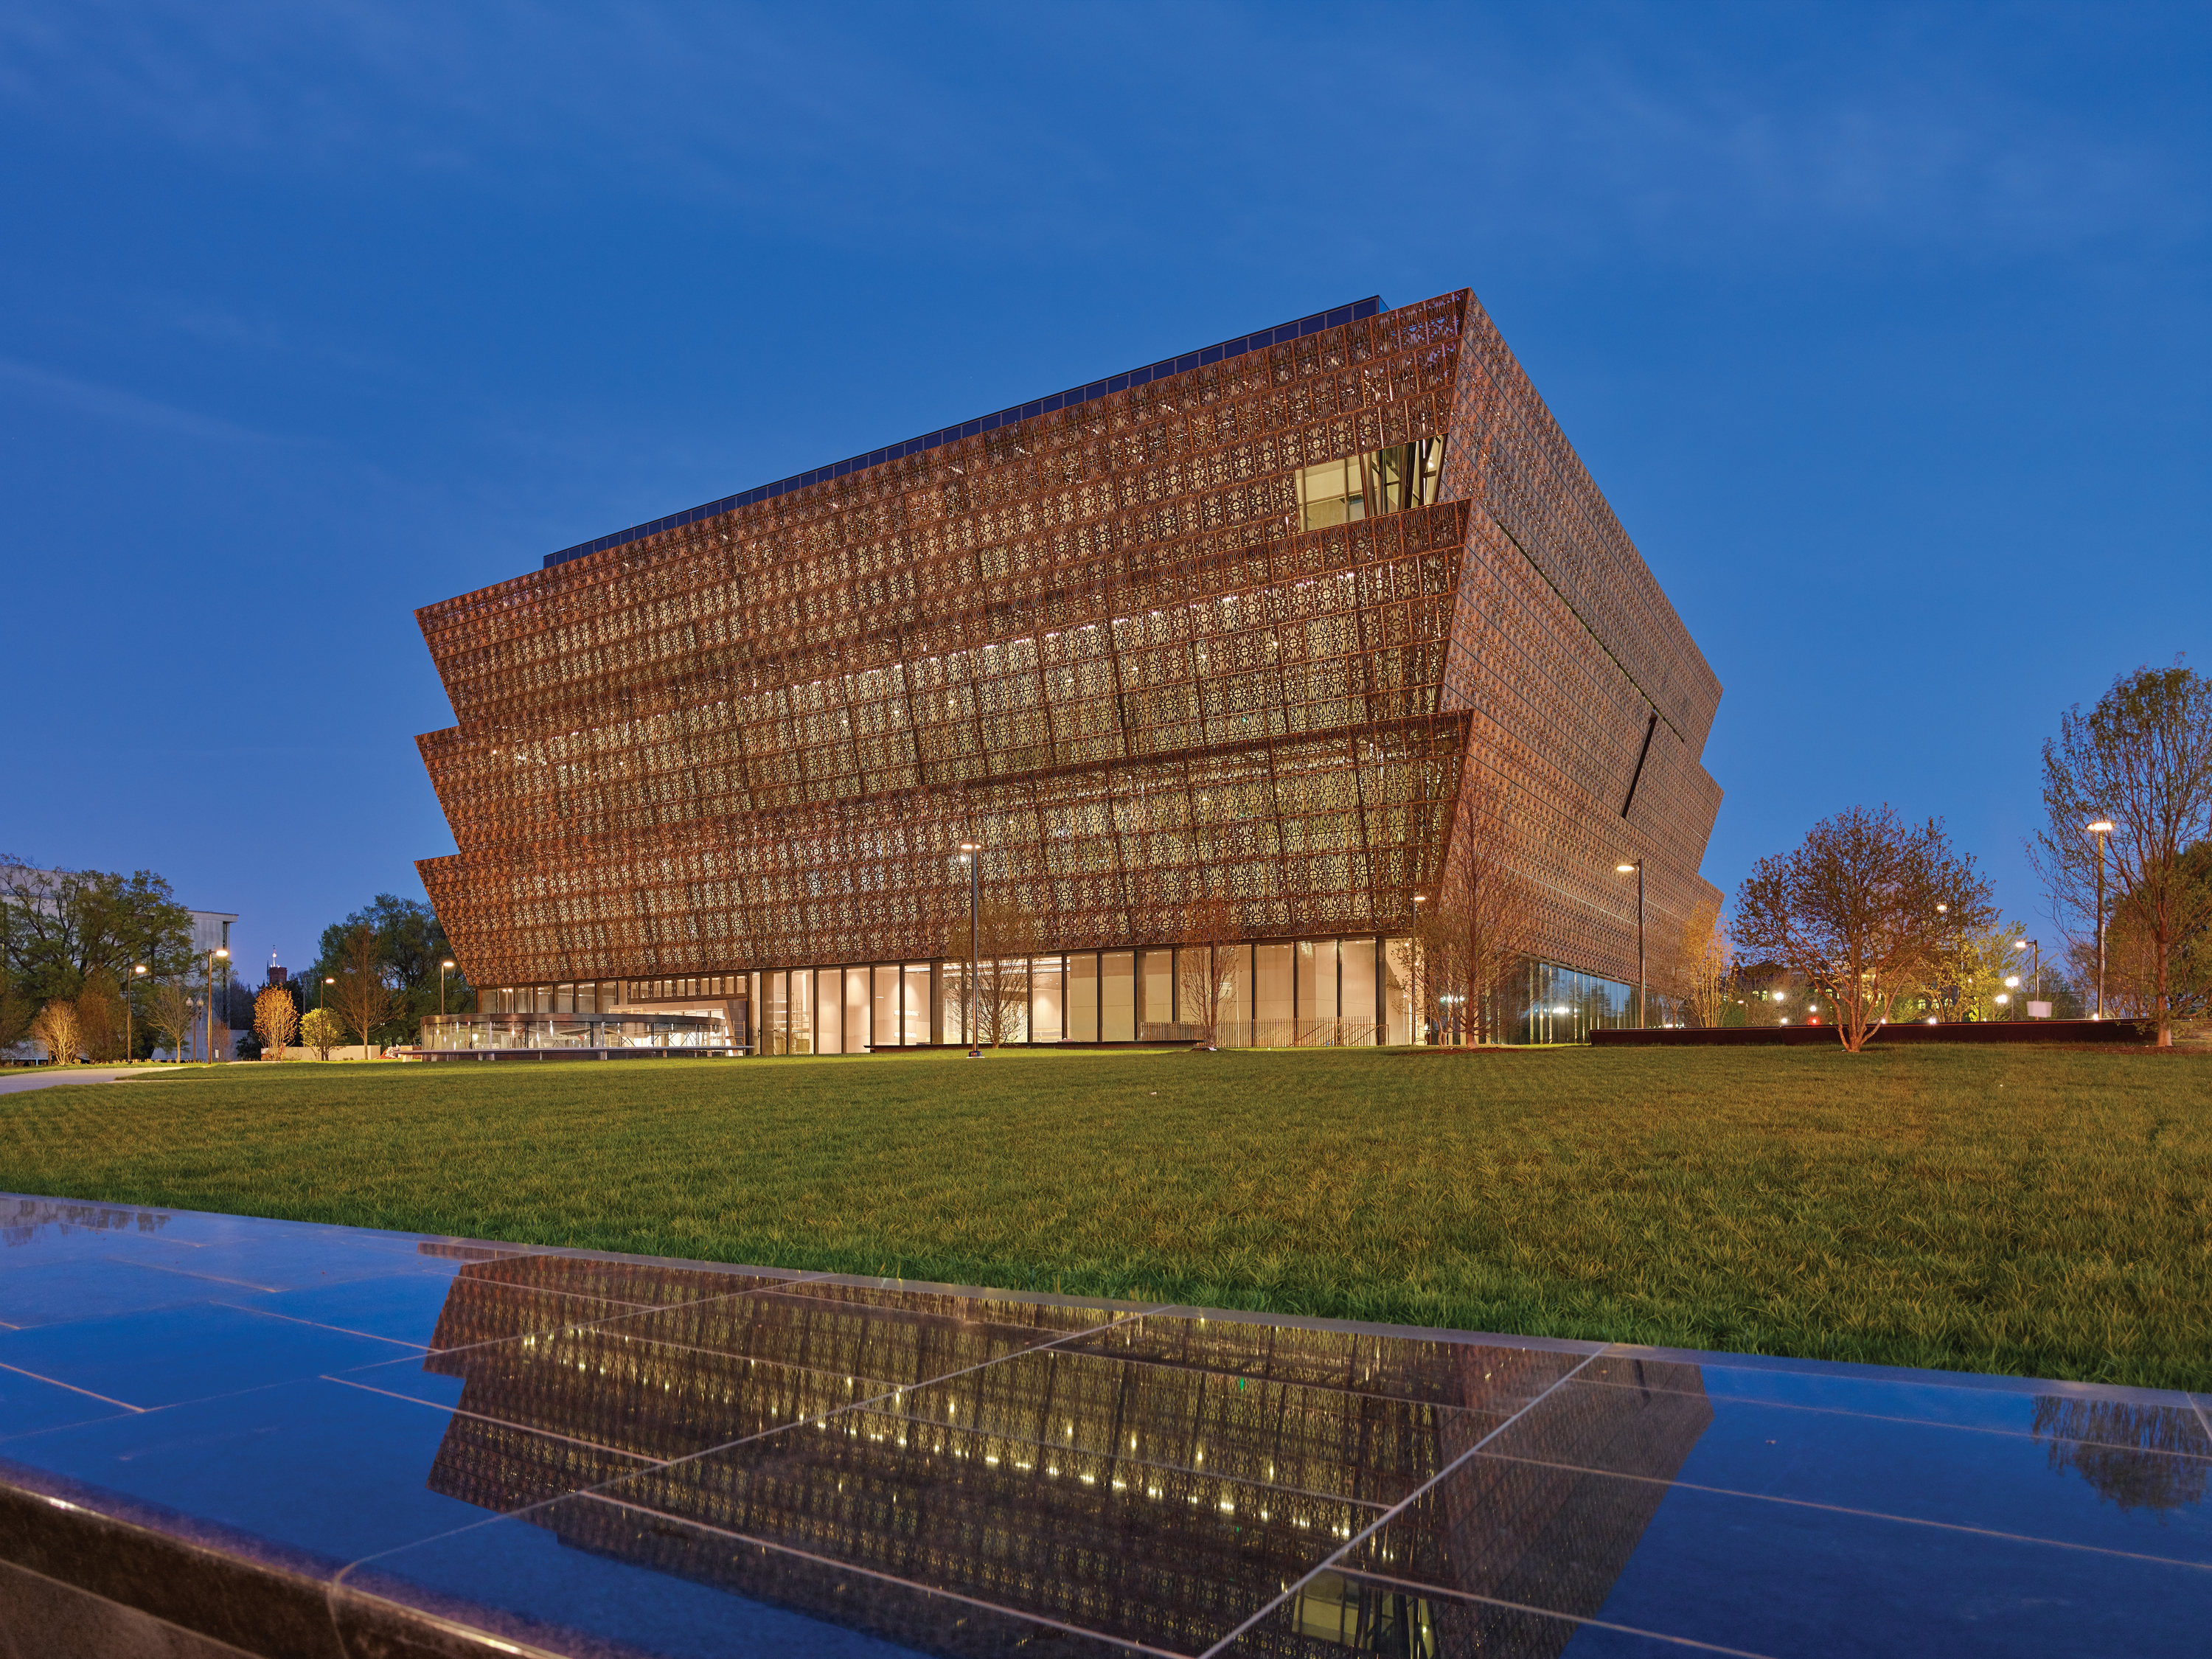 National Museum of African American History and Culture Bus Ride